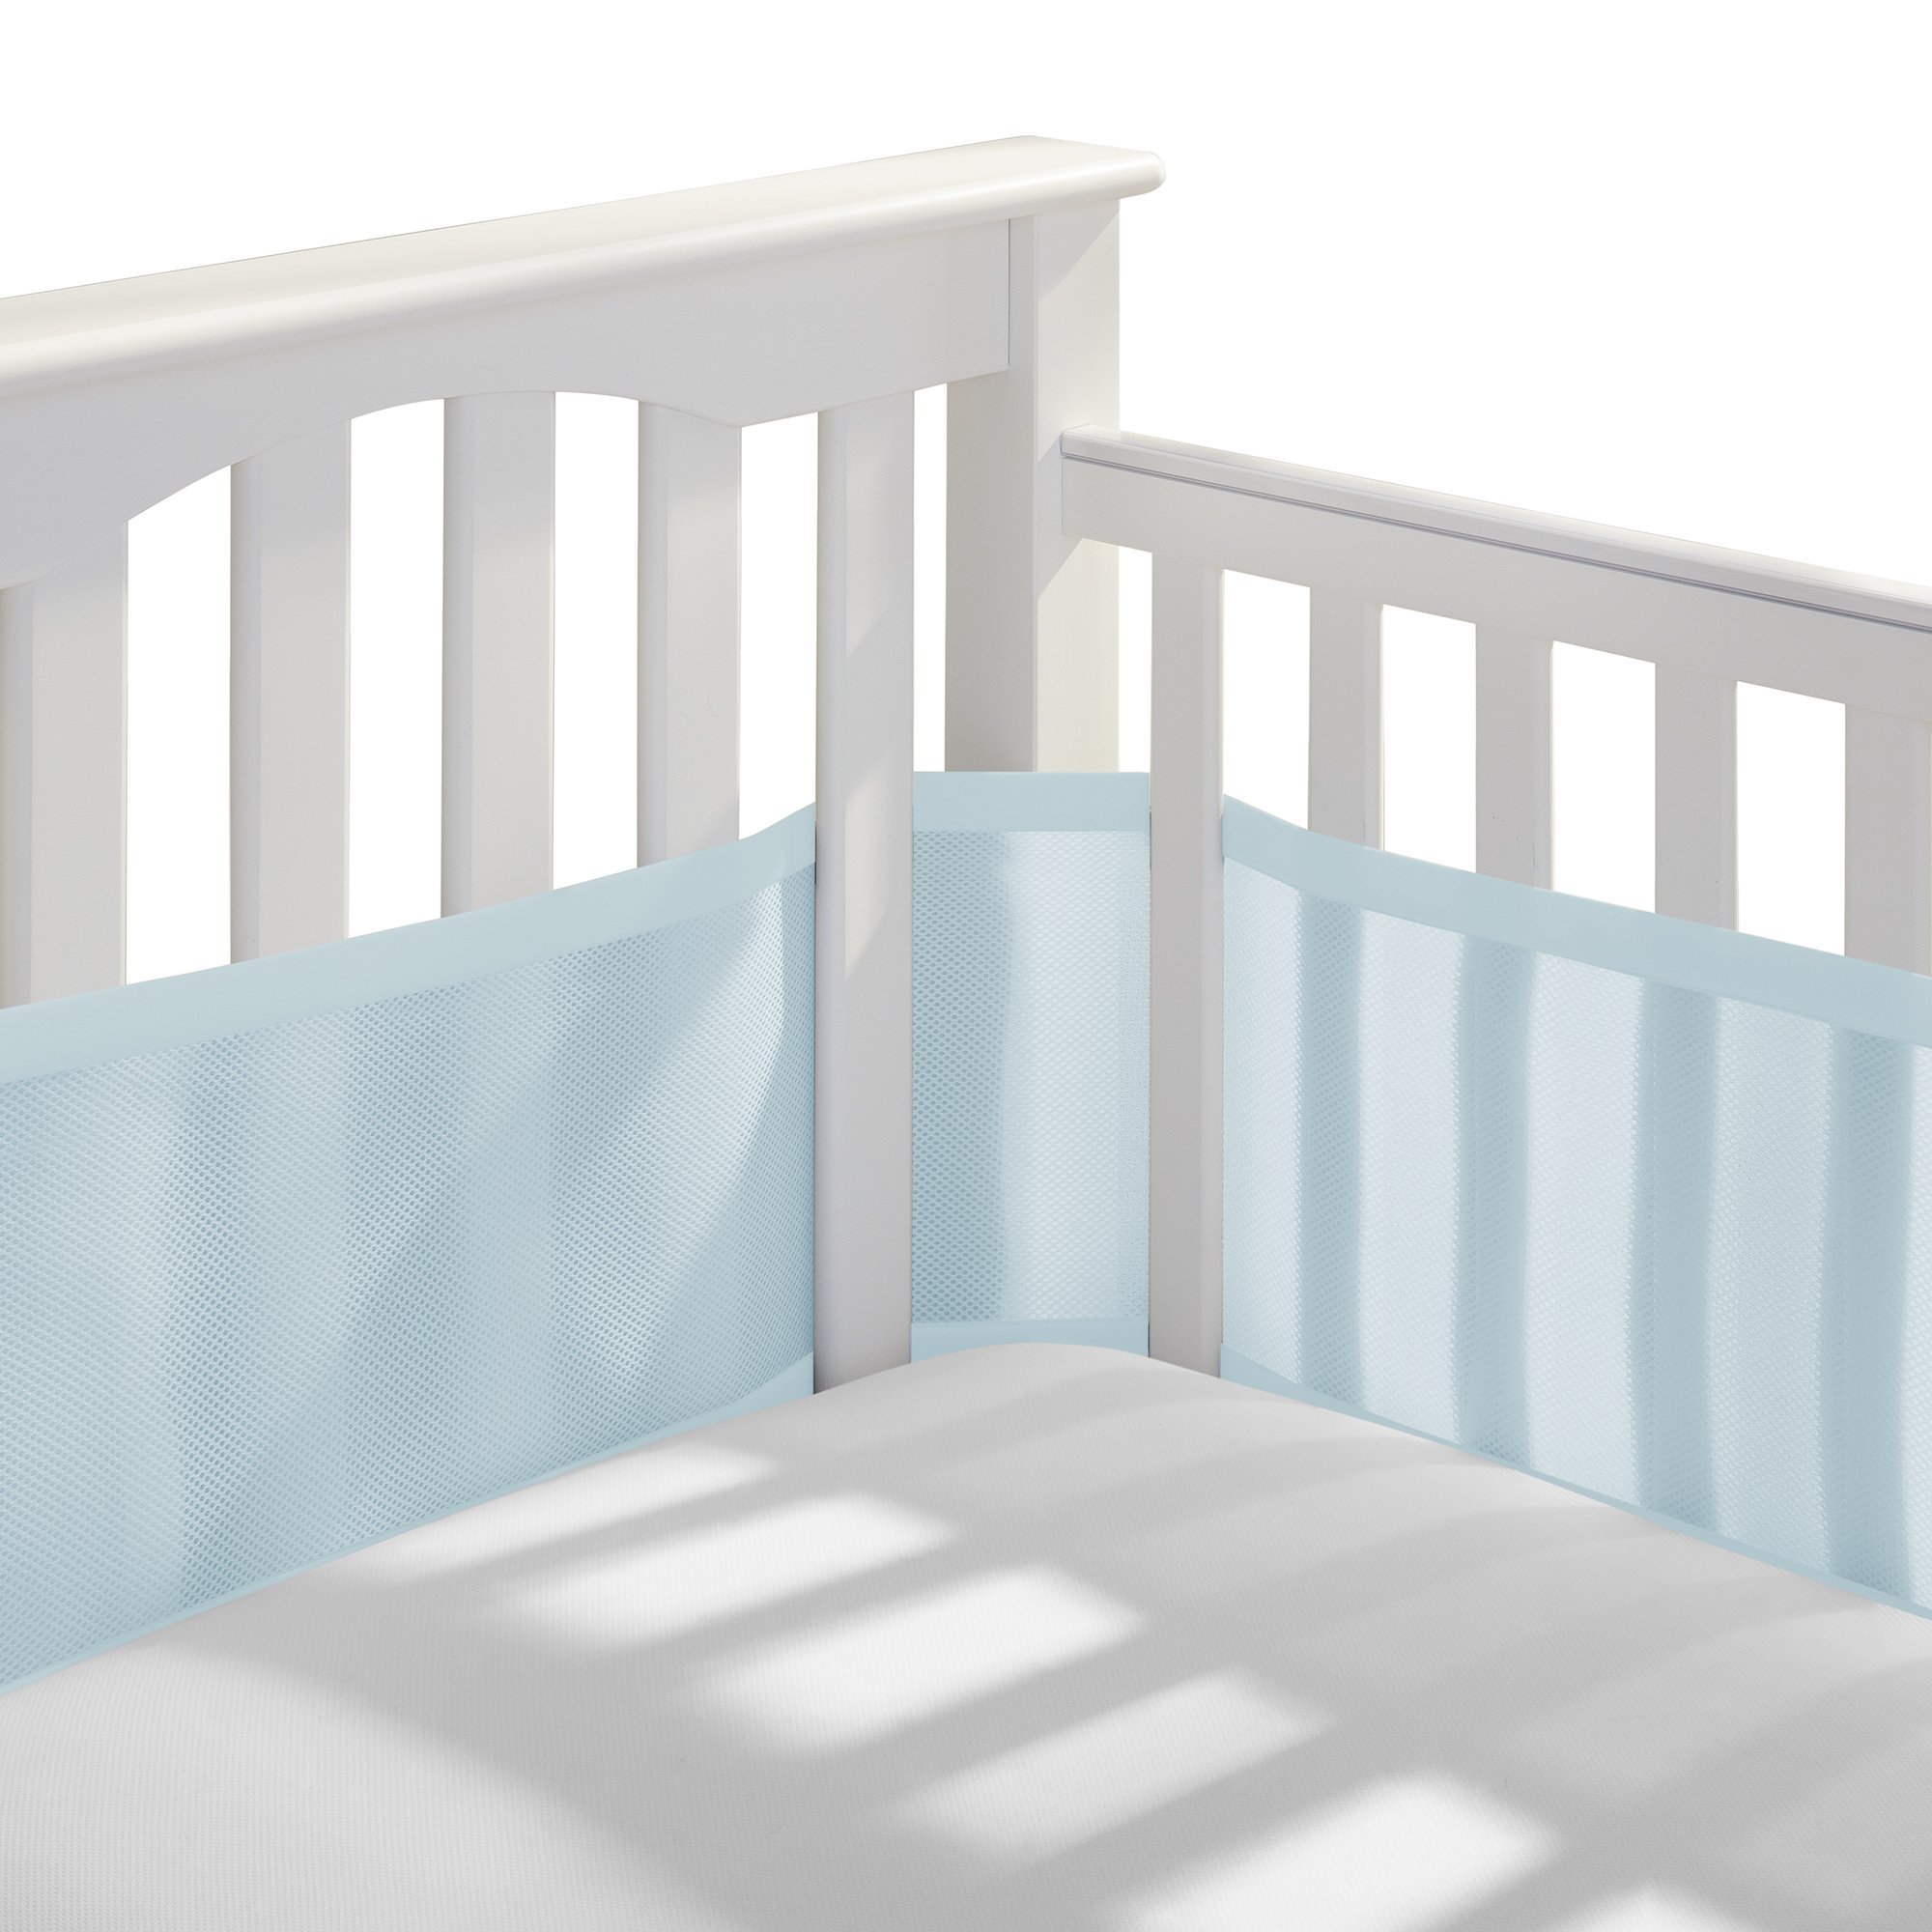 BreathableBaby Classic Patented, Safer for Baby, Anti-Bumper, Non-Padded, Breathable Mesh Crib Liner - Blue Aqua by BreathableBaby